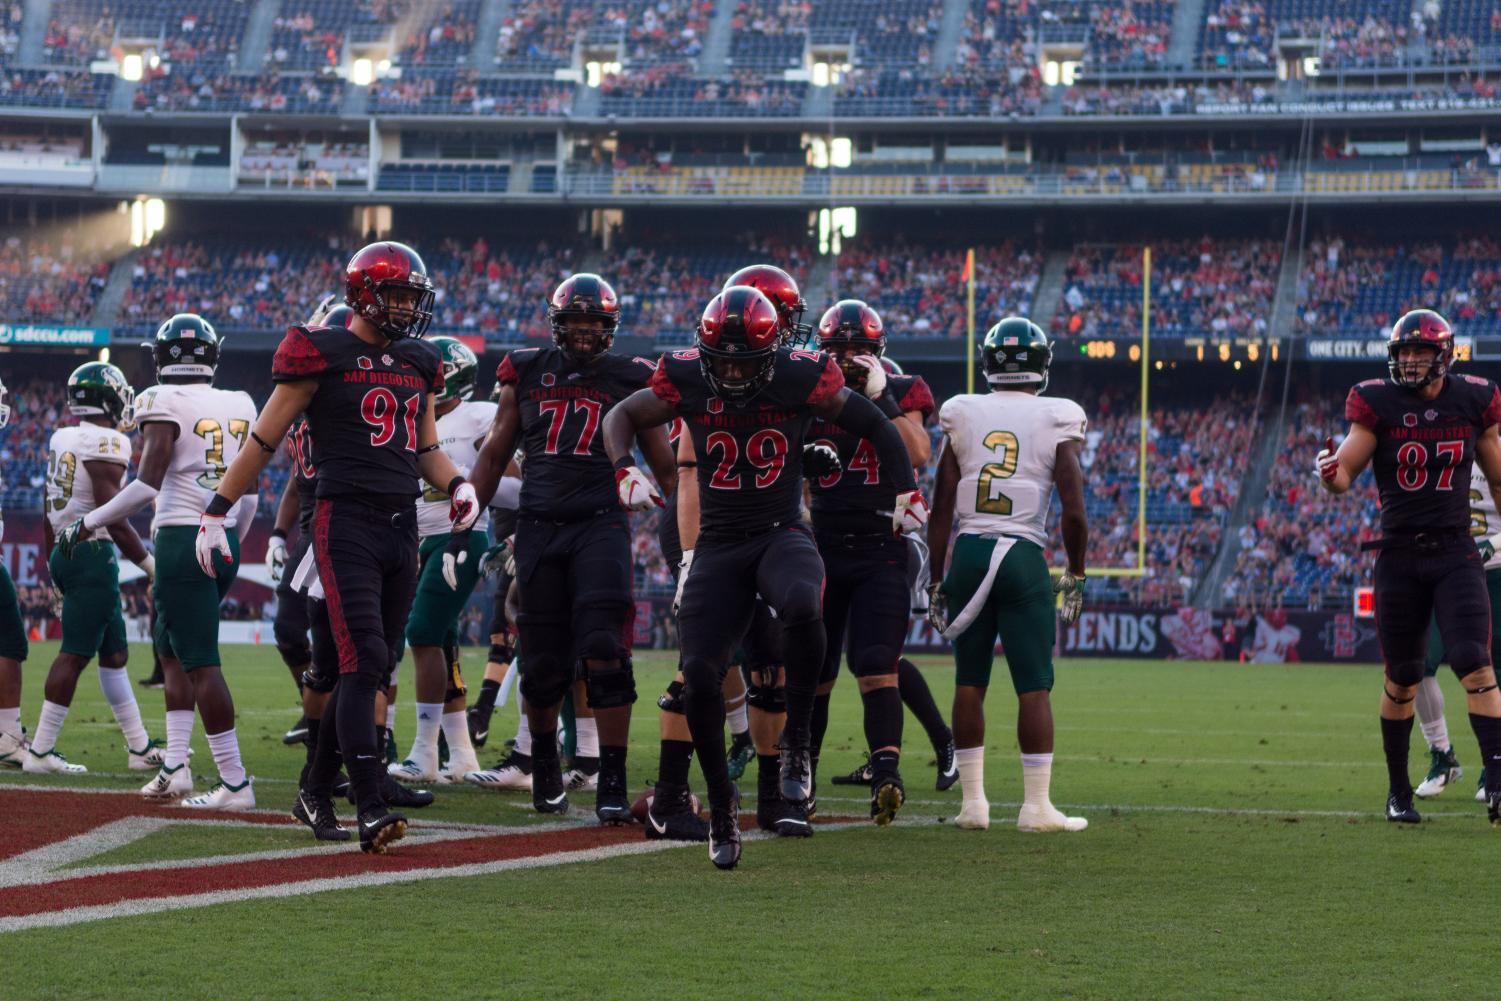 Juwan Washington celebrates after scoring the first of his career-high three touchdowns during the Aztecs 28-14 victory over Sacramento State on Sept. 8 at SDCCU Stadium.